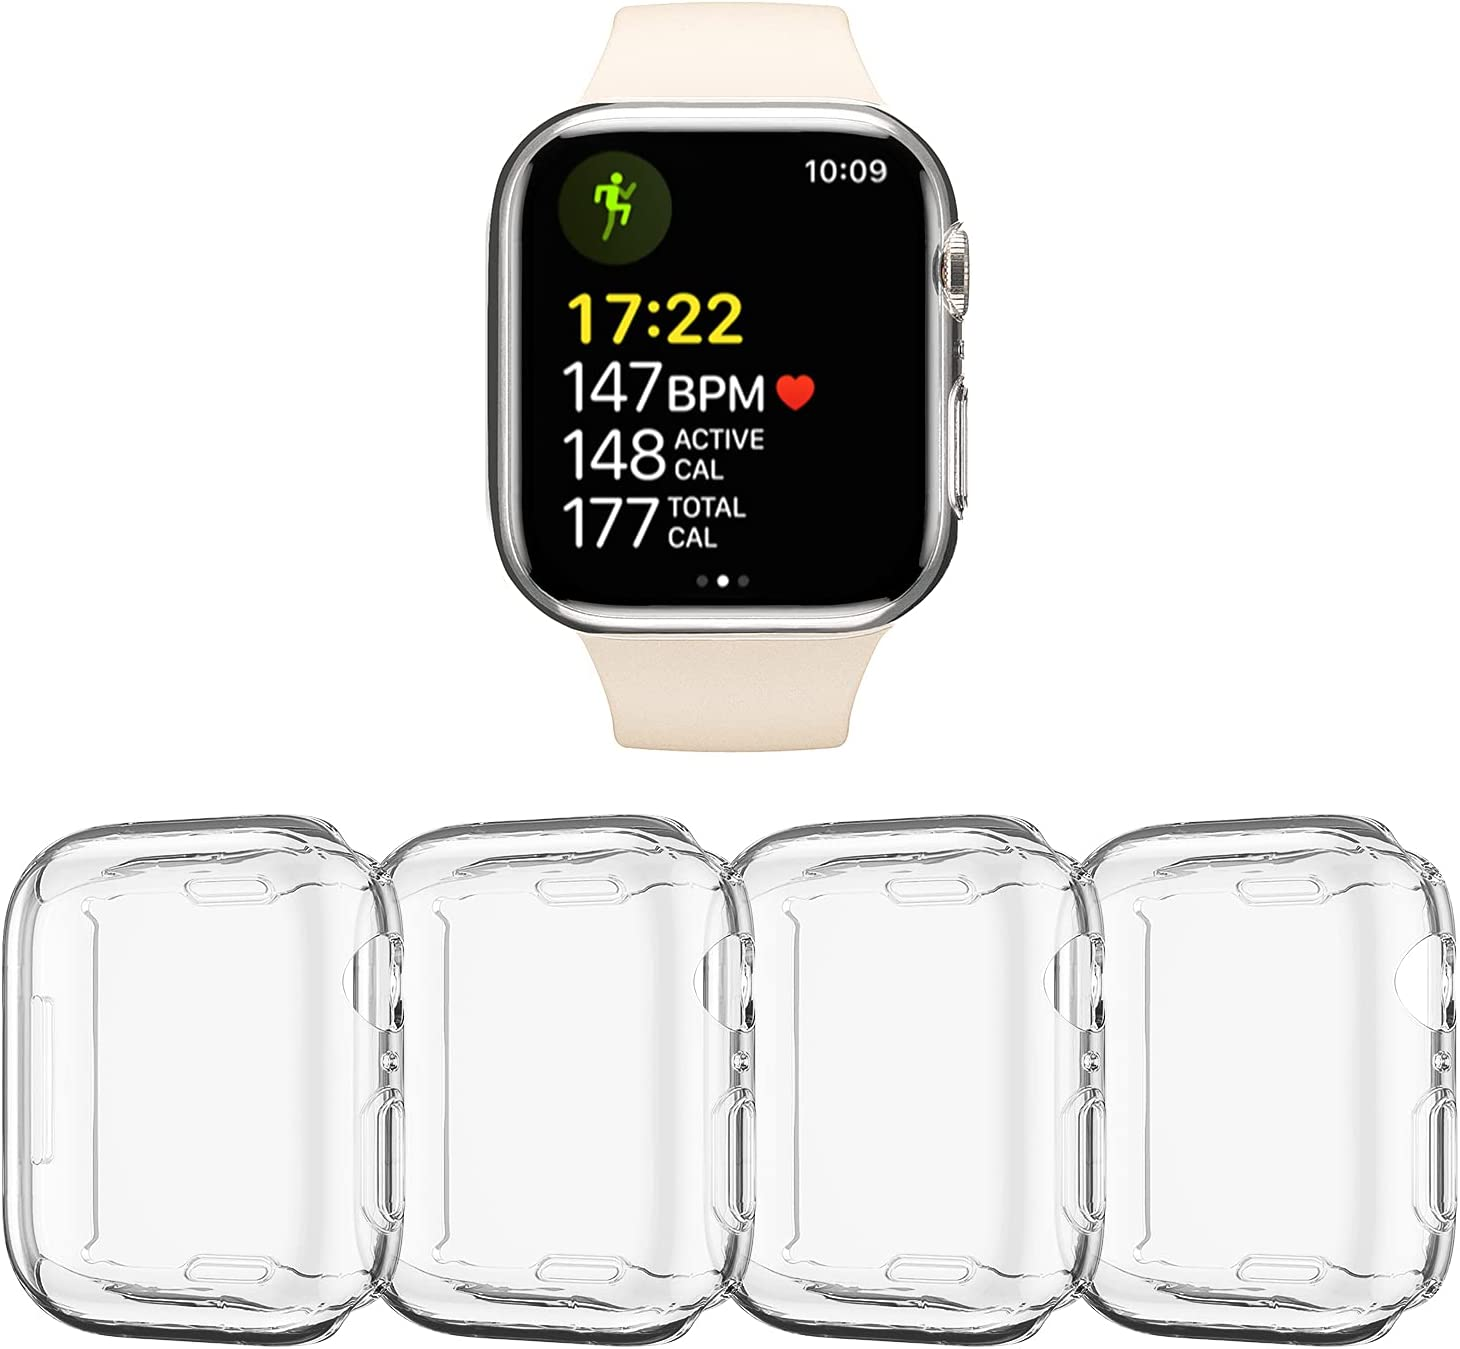 4 Pack Overall Protective Case TPU HD Clear Ultra-Thin Cover Screen Protector Compatible with Apple Watch Series 7 45mm,iWatch Accessories for Women and Men, Transparent